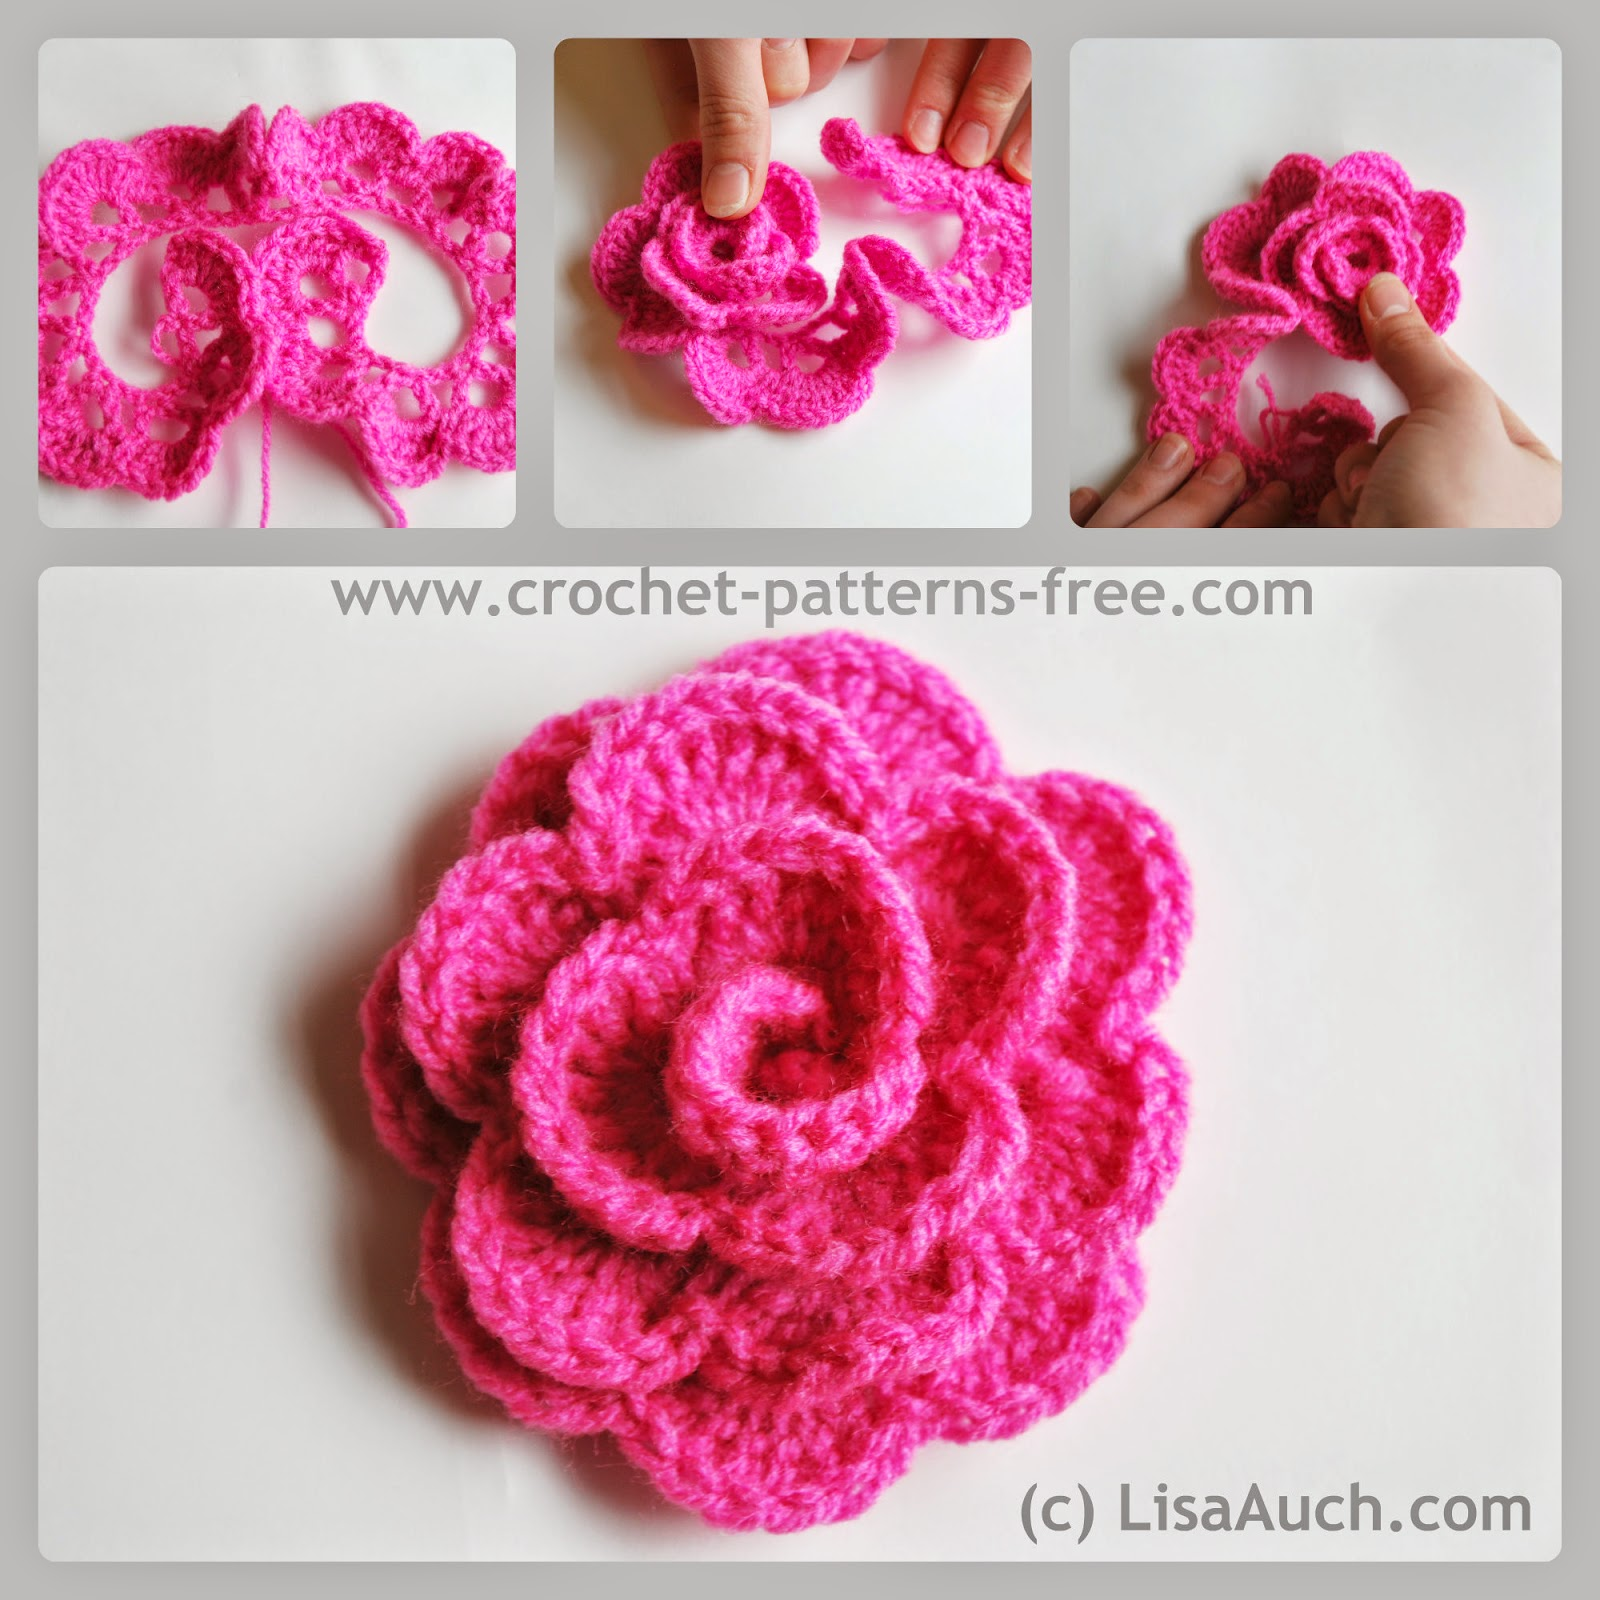 Crochet Rose Pattern : crochet+rose-free+crochet+rose+pattern.jpg